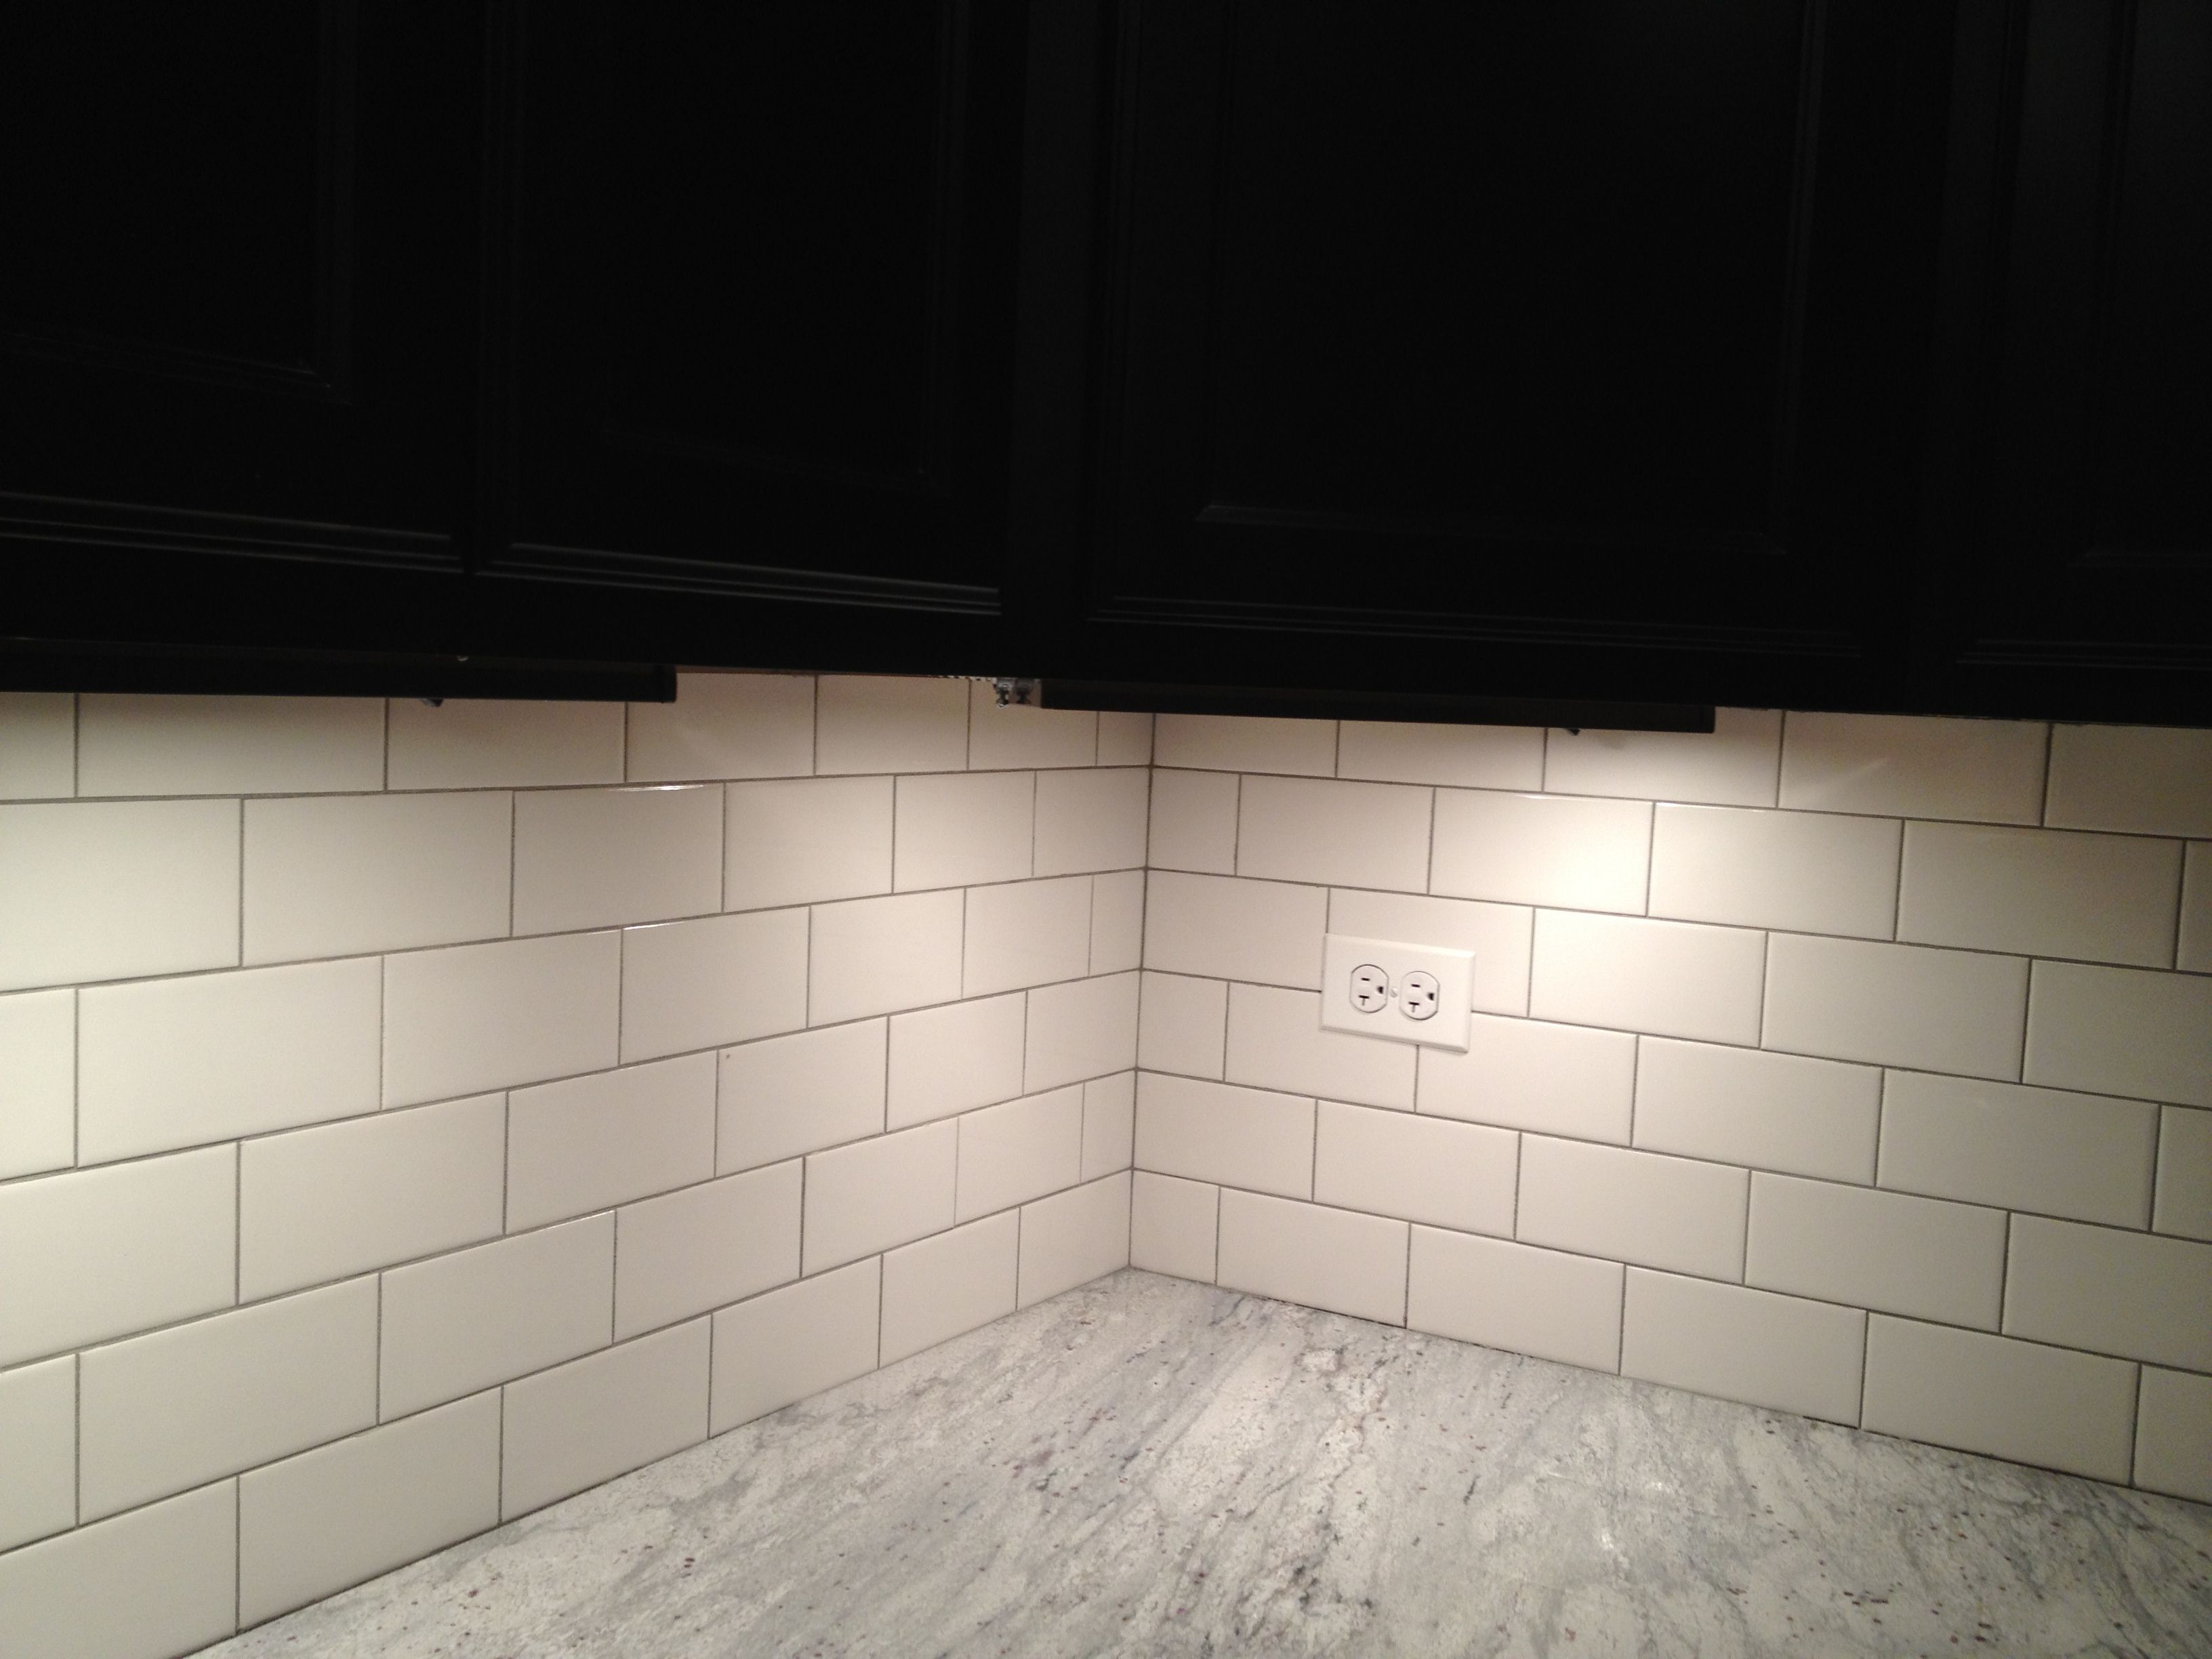 White Brick Look Tile Light Gray Grout With Brick Pattern White Subway Tile Back